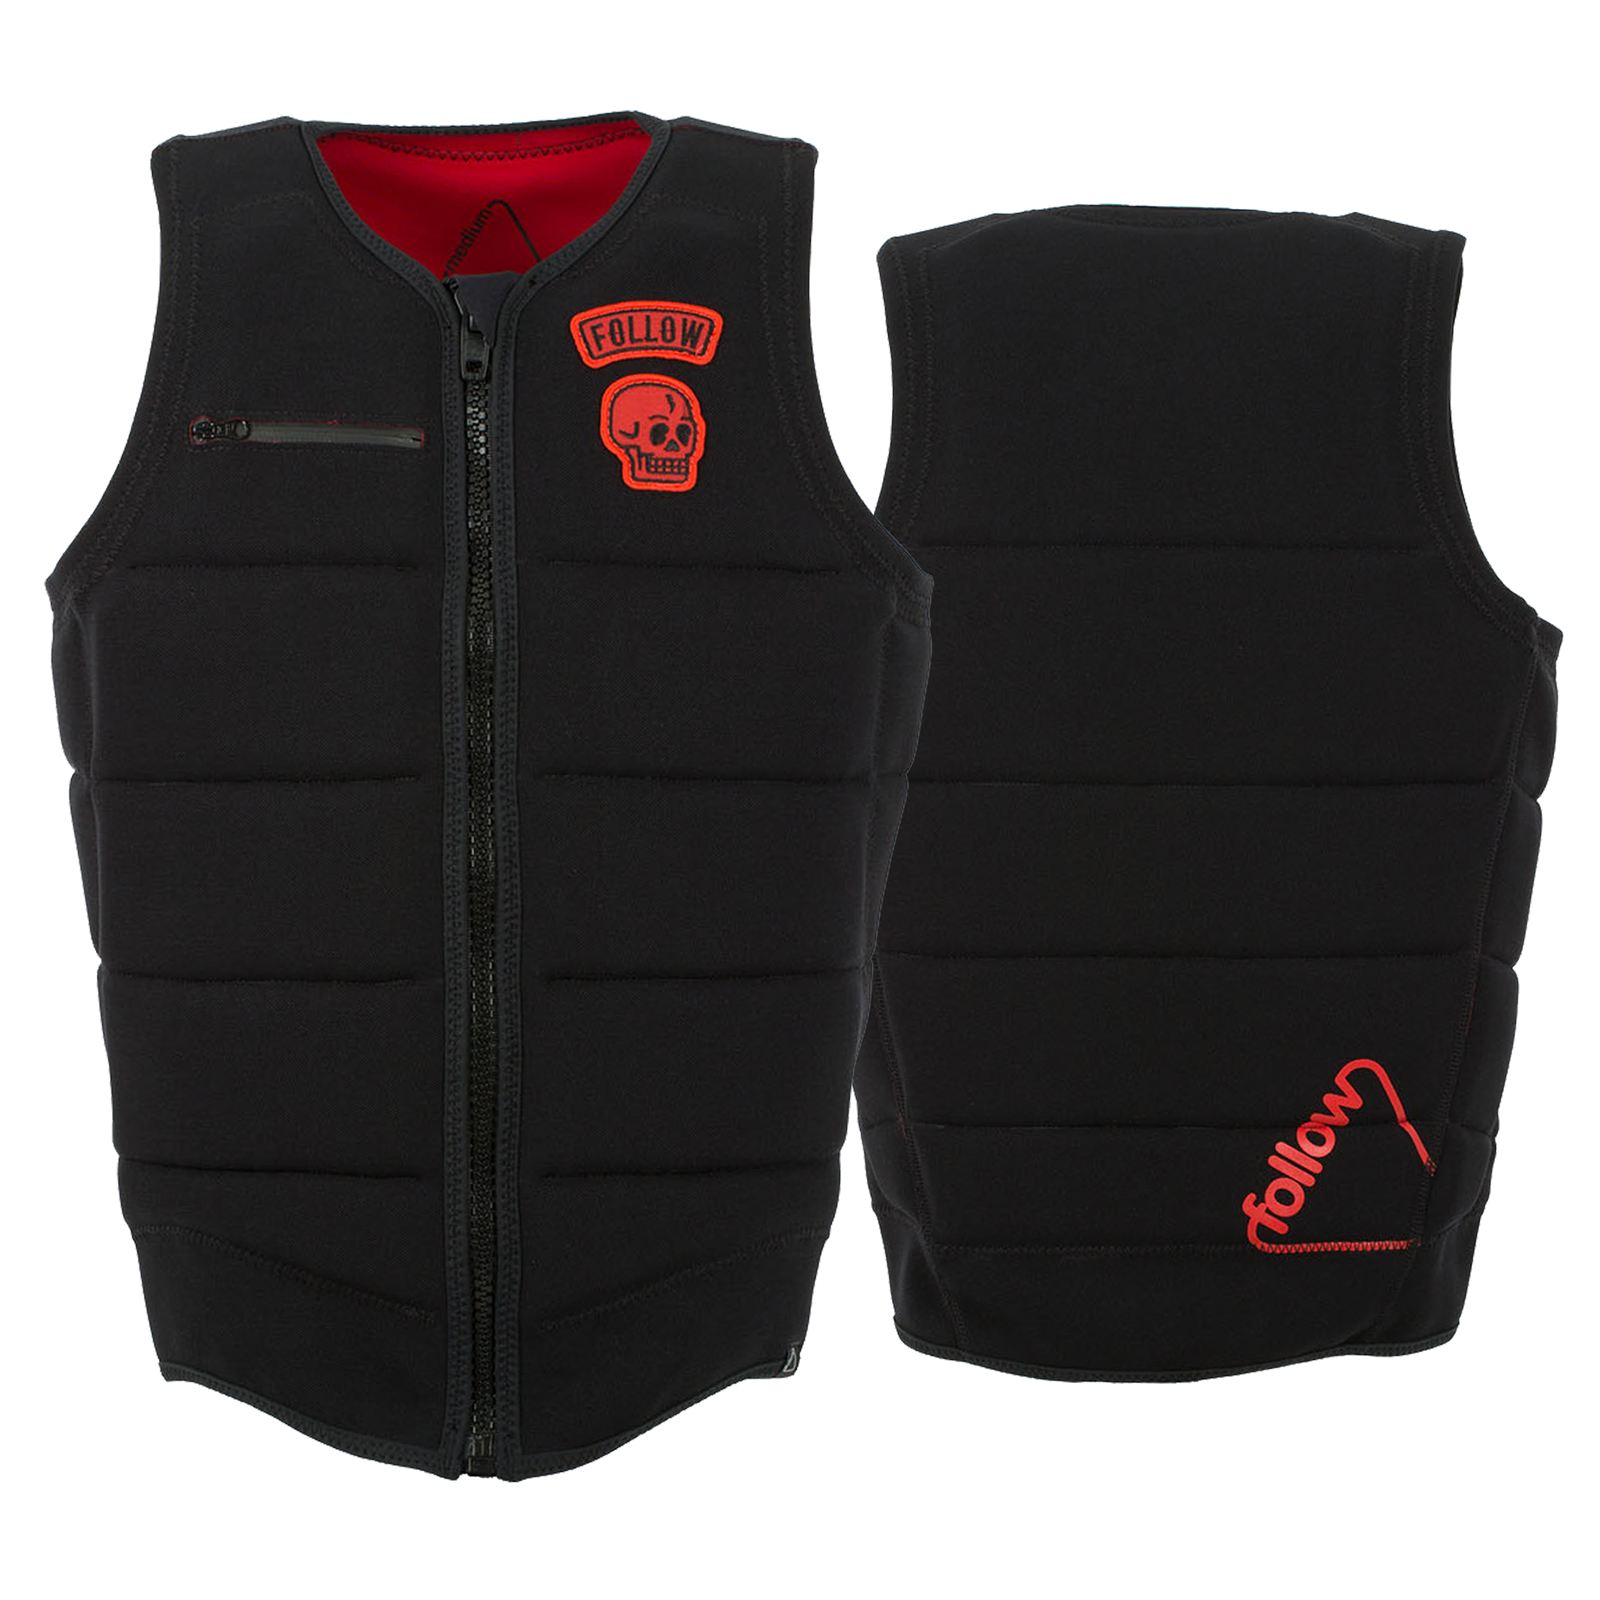 B P PRO IMPACT VEST BLACK FOLLOW 2017